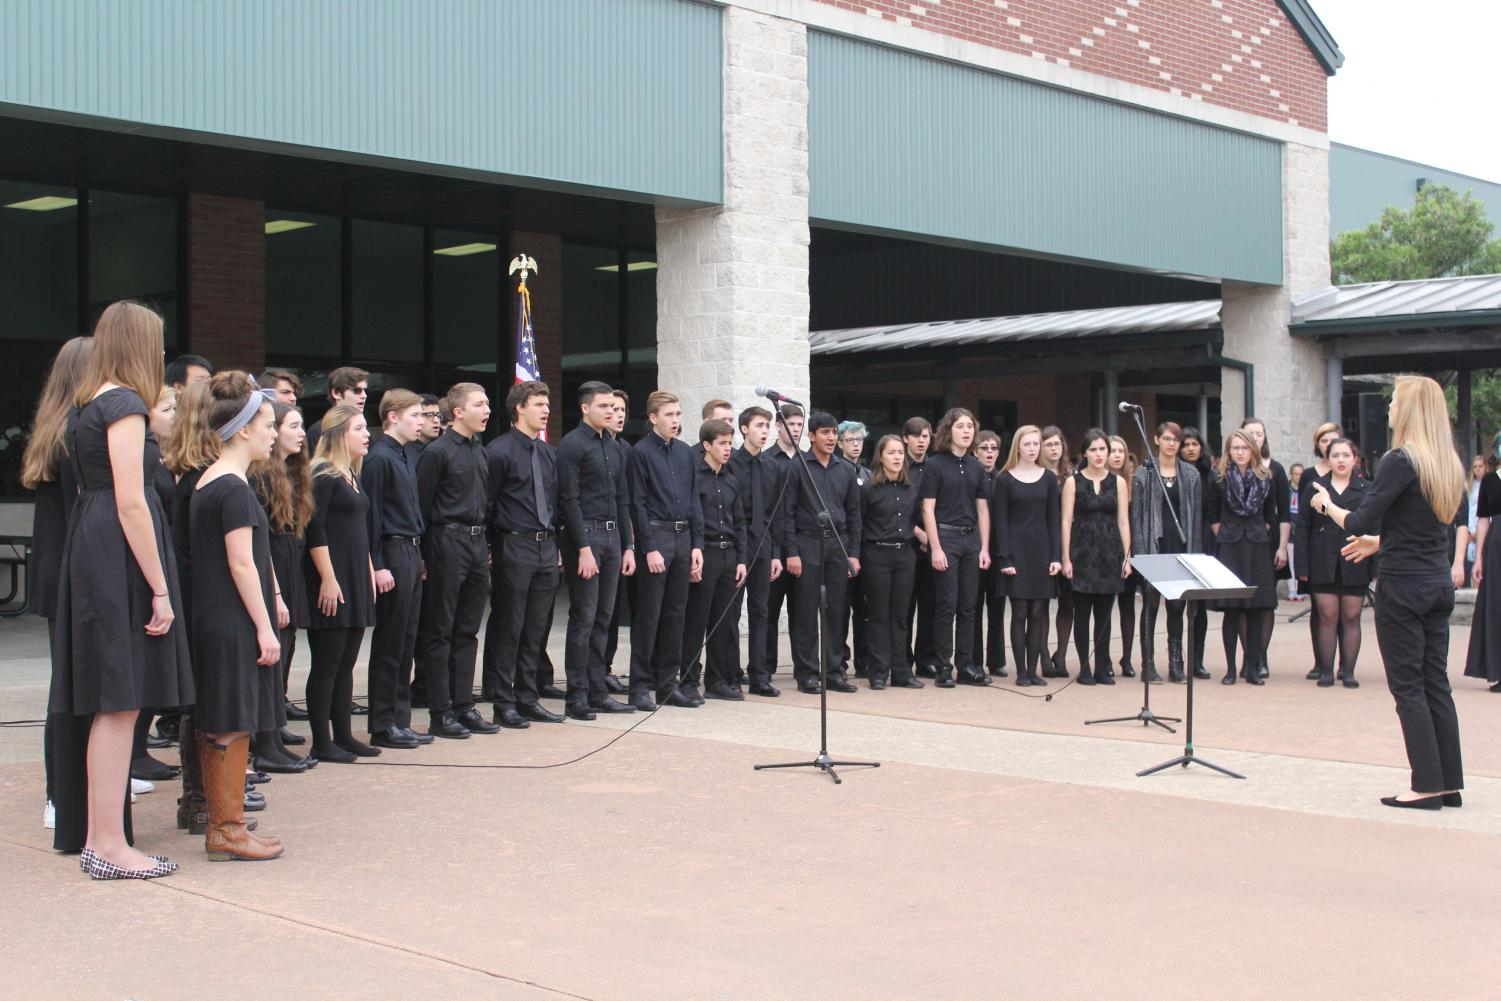 The choir sings the National Anthem in the Veterans Ceremony on Nov. 10.